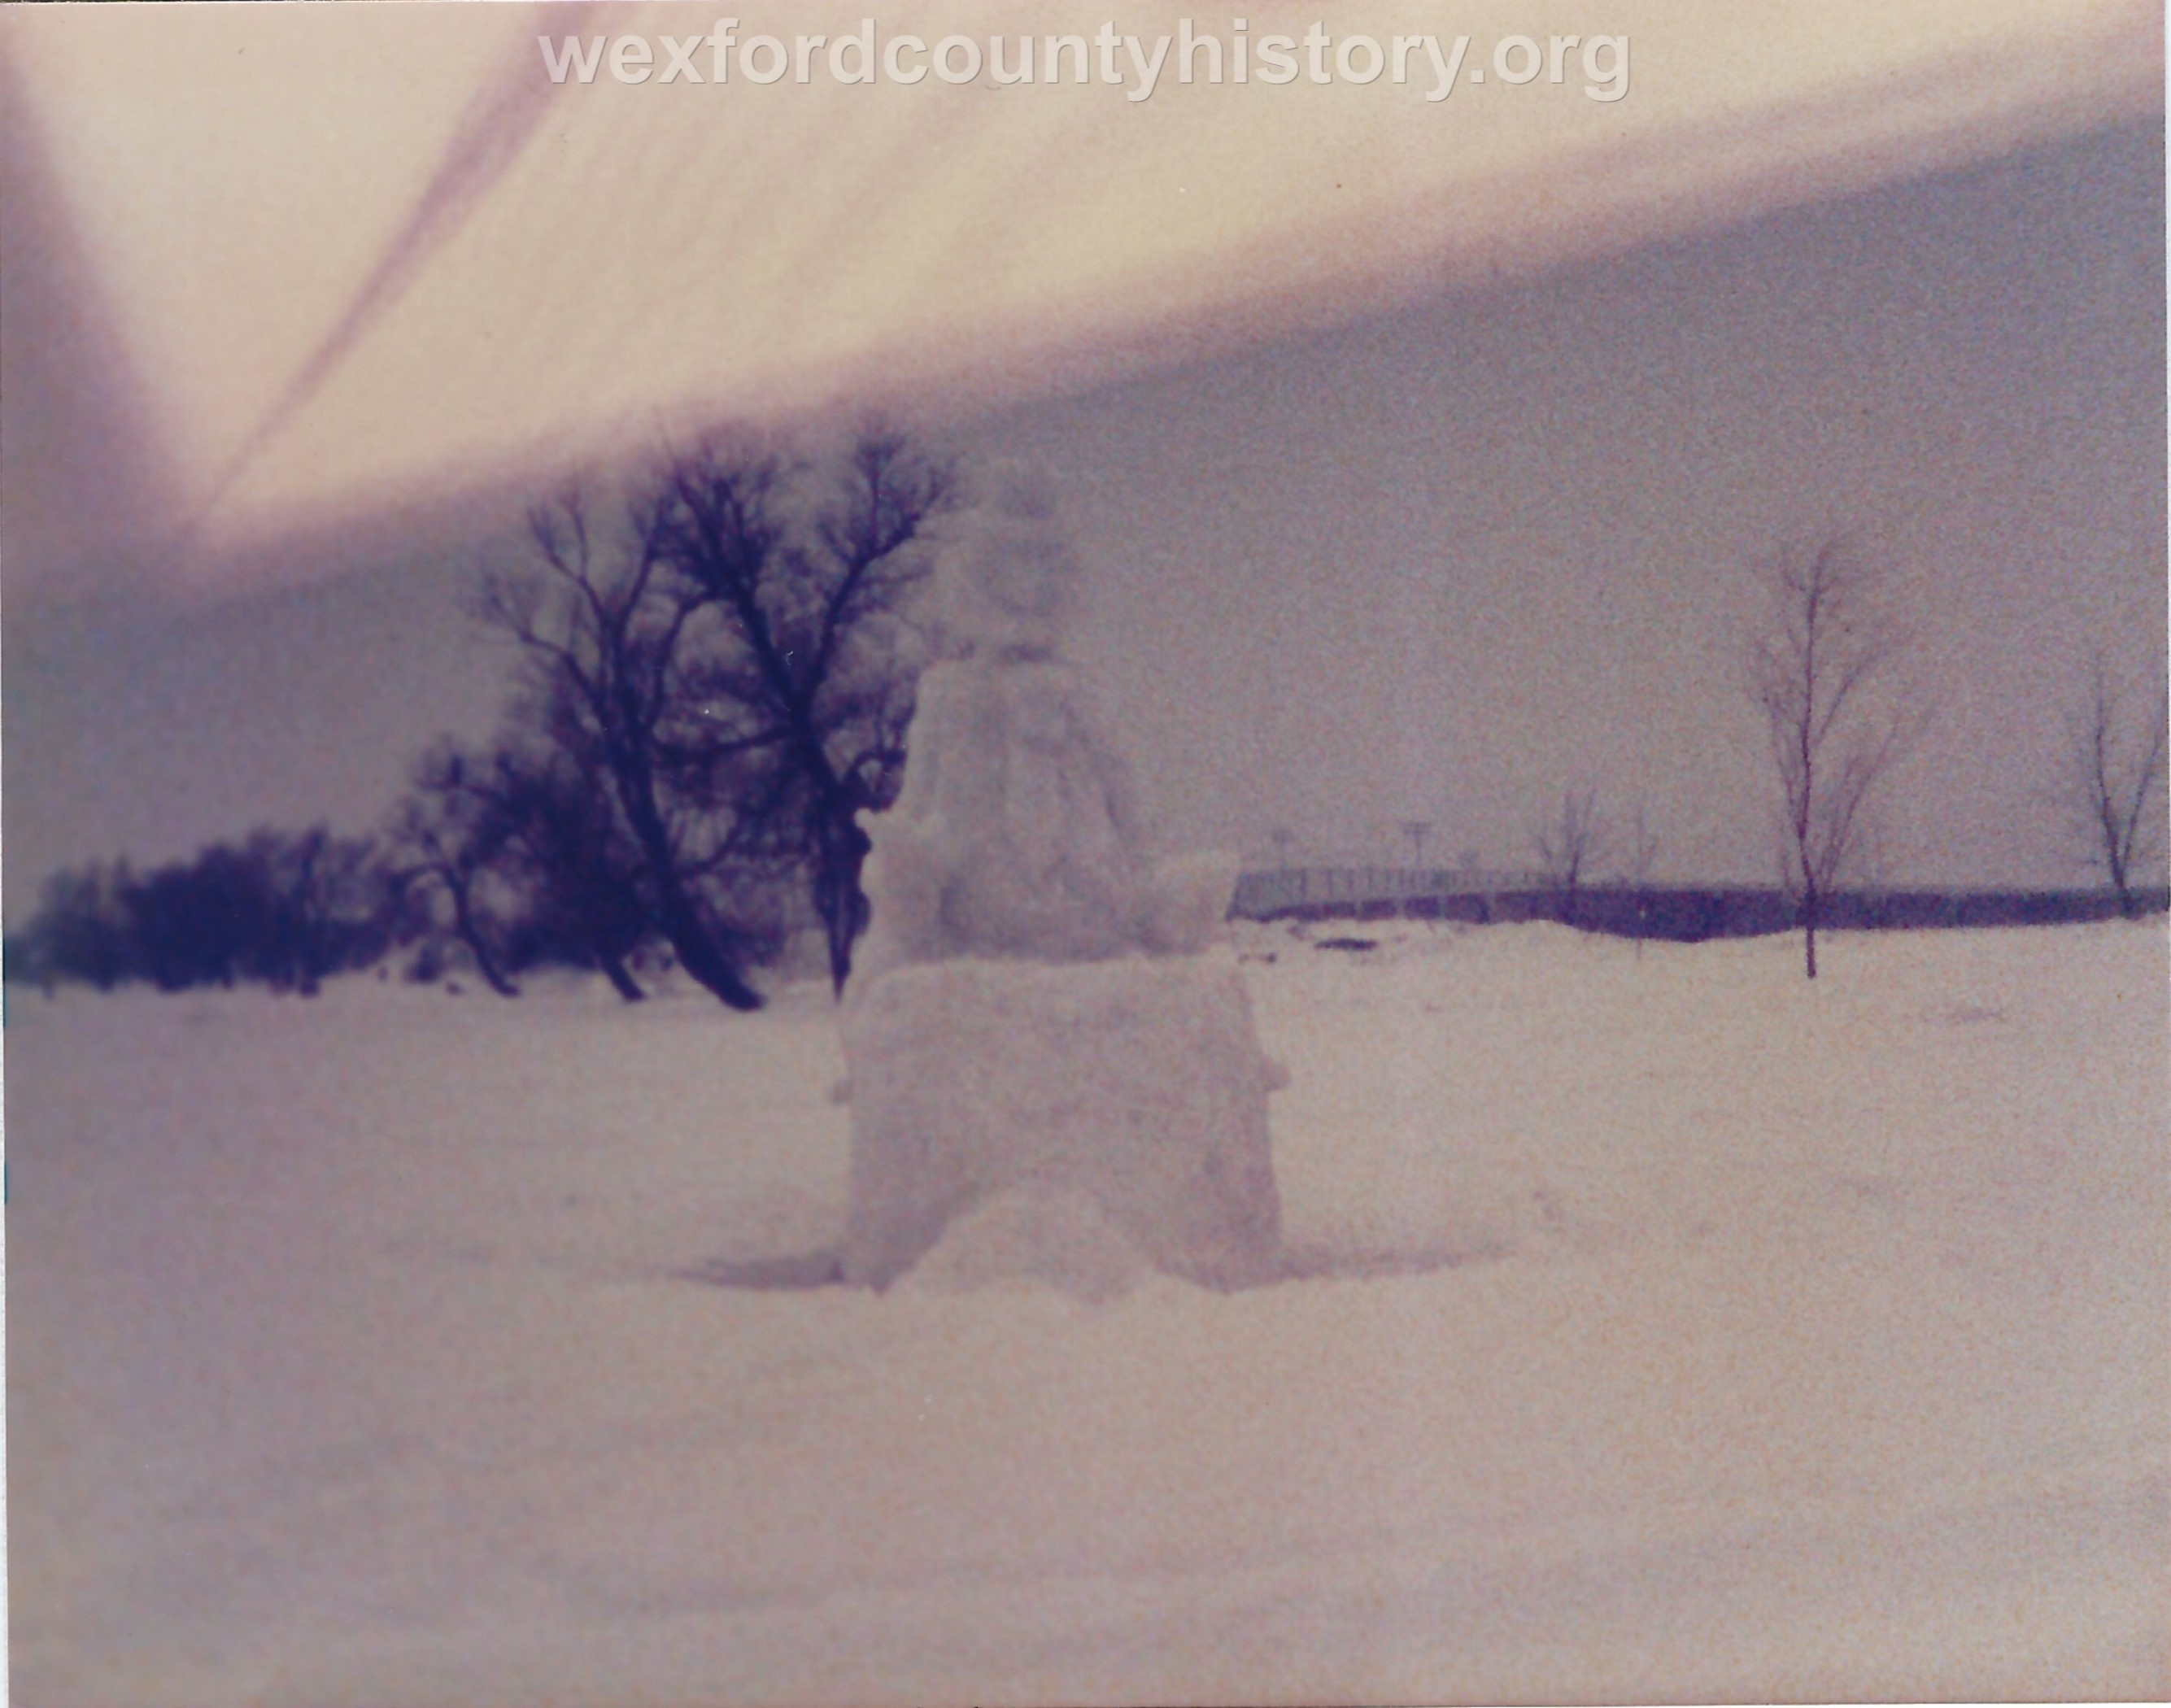 Cadillac-Recreation-Ice-Sculptures-On-Lake-Cadillac-For-Snowmobile-Festival-18